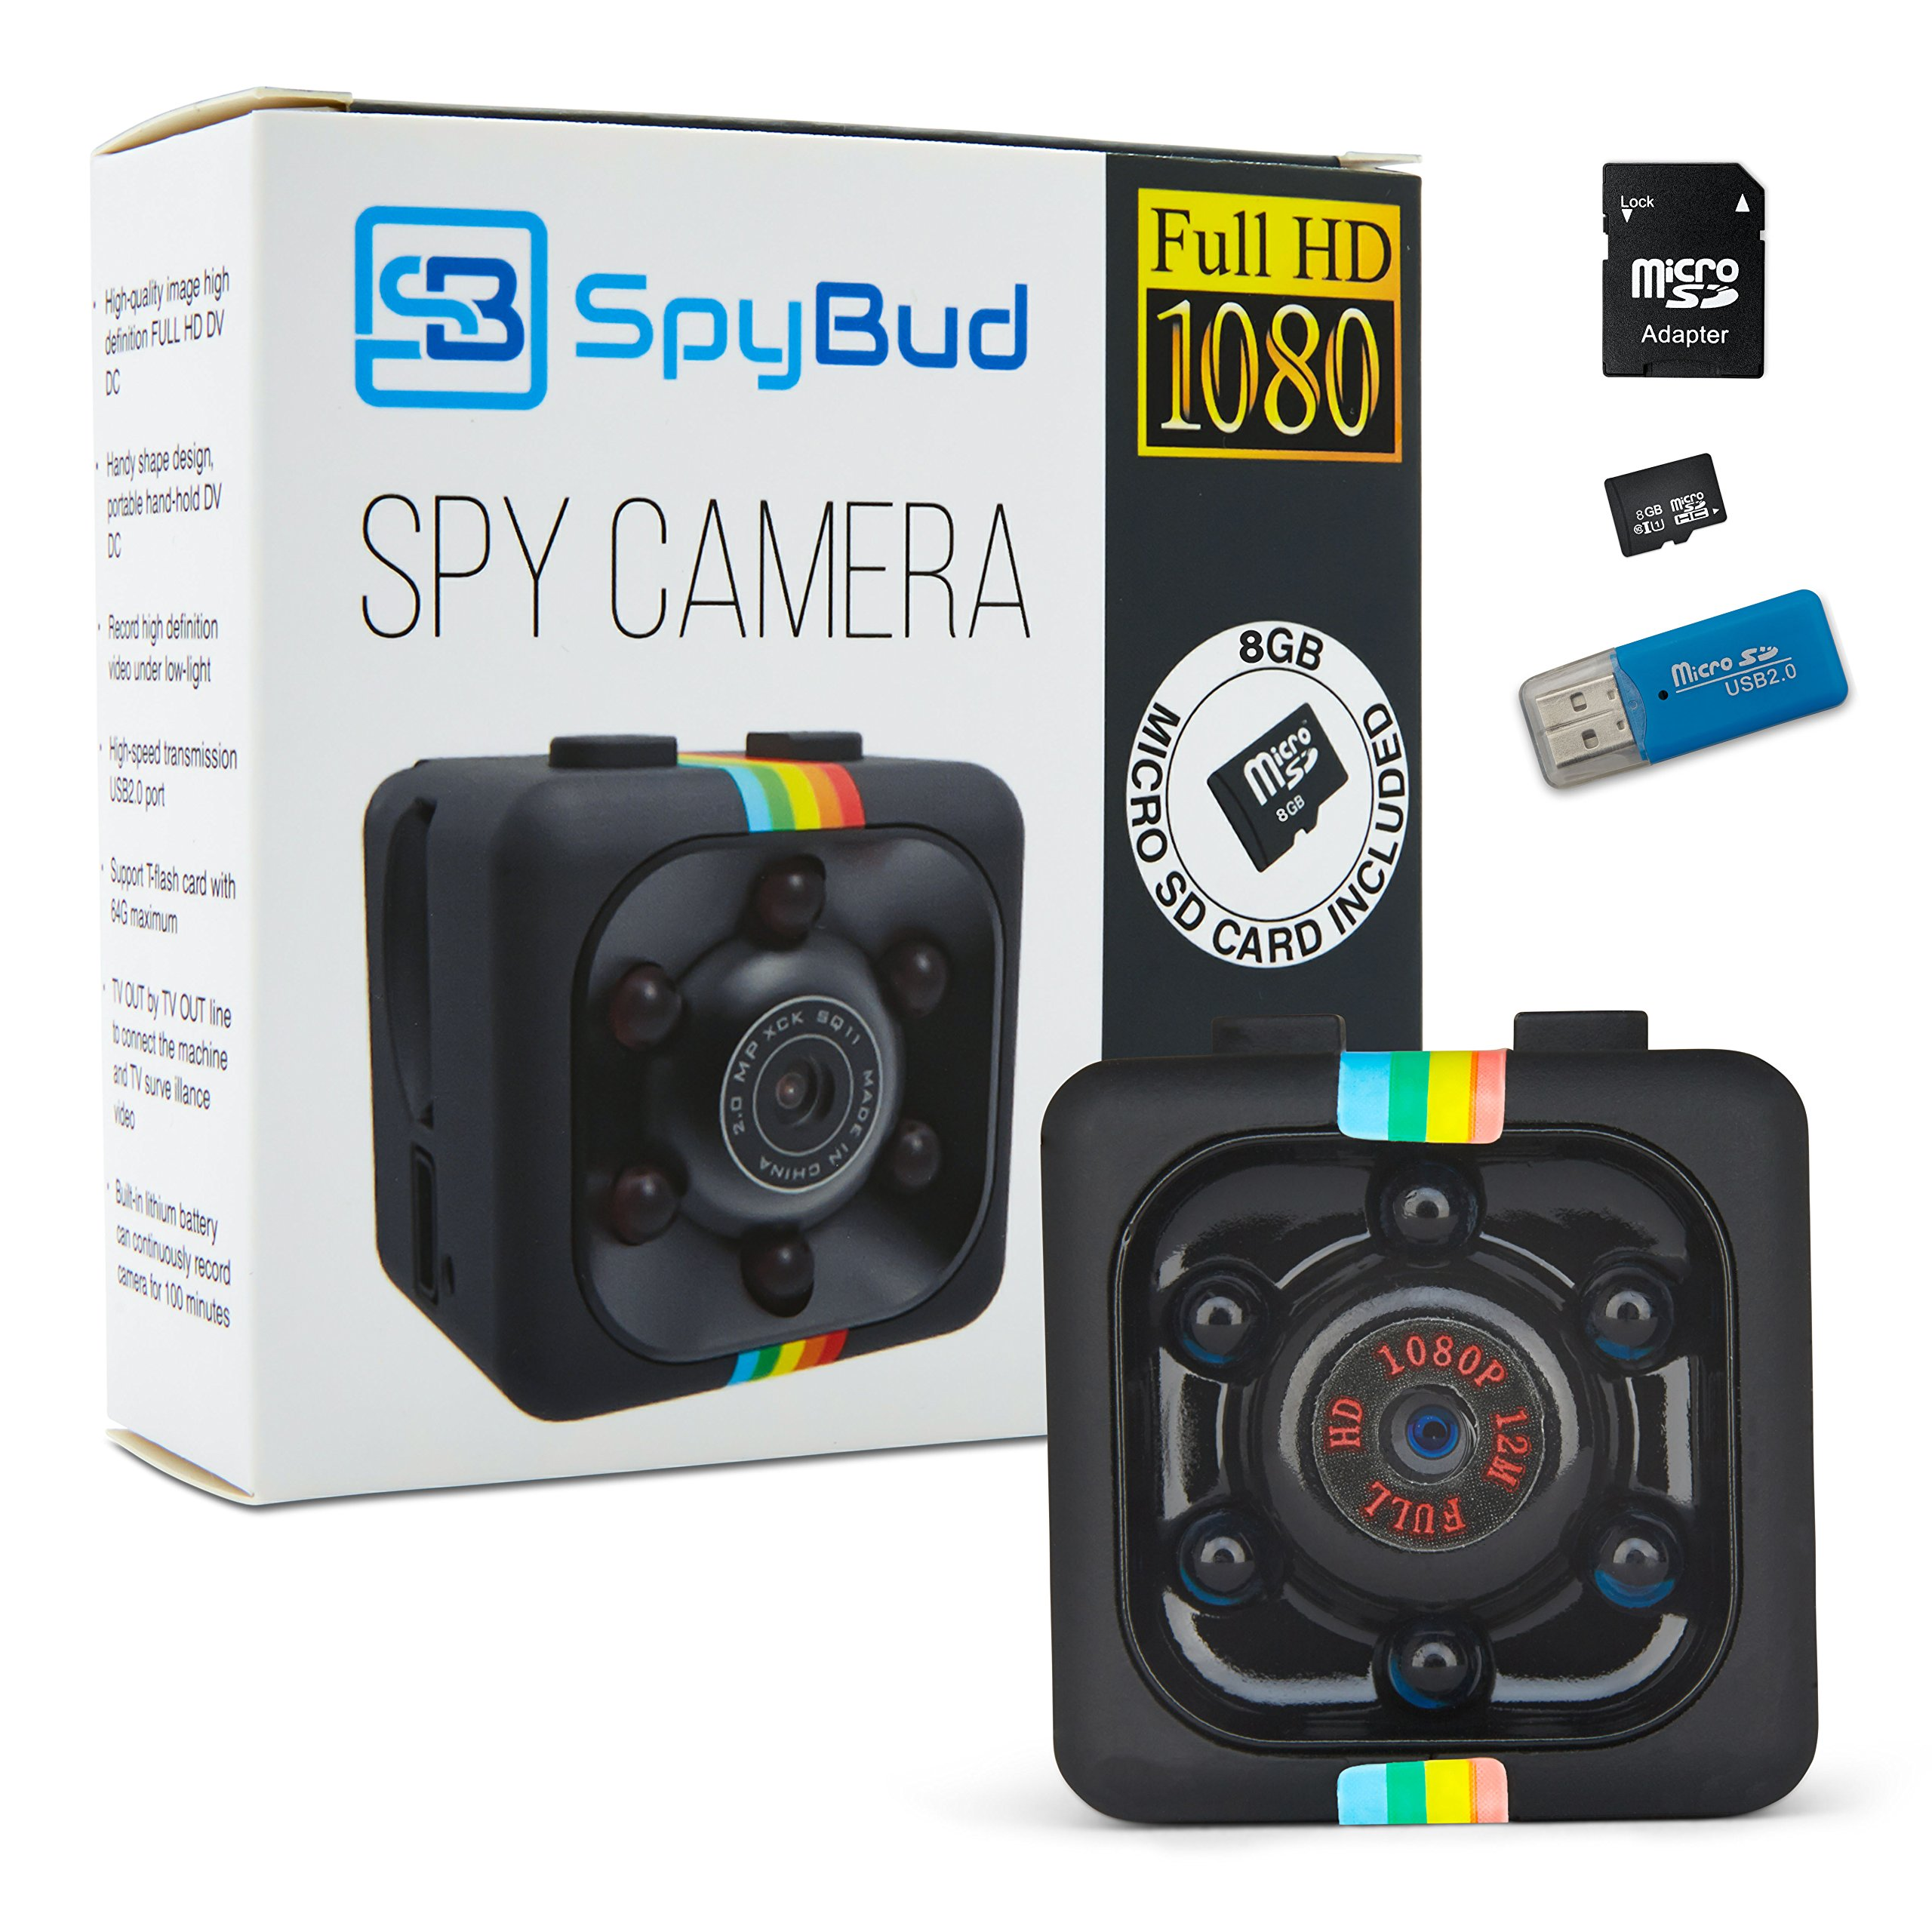 Cheap Toilet Spy Camera, find Toilet Spy Camera deals on